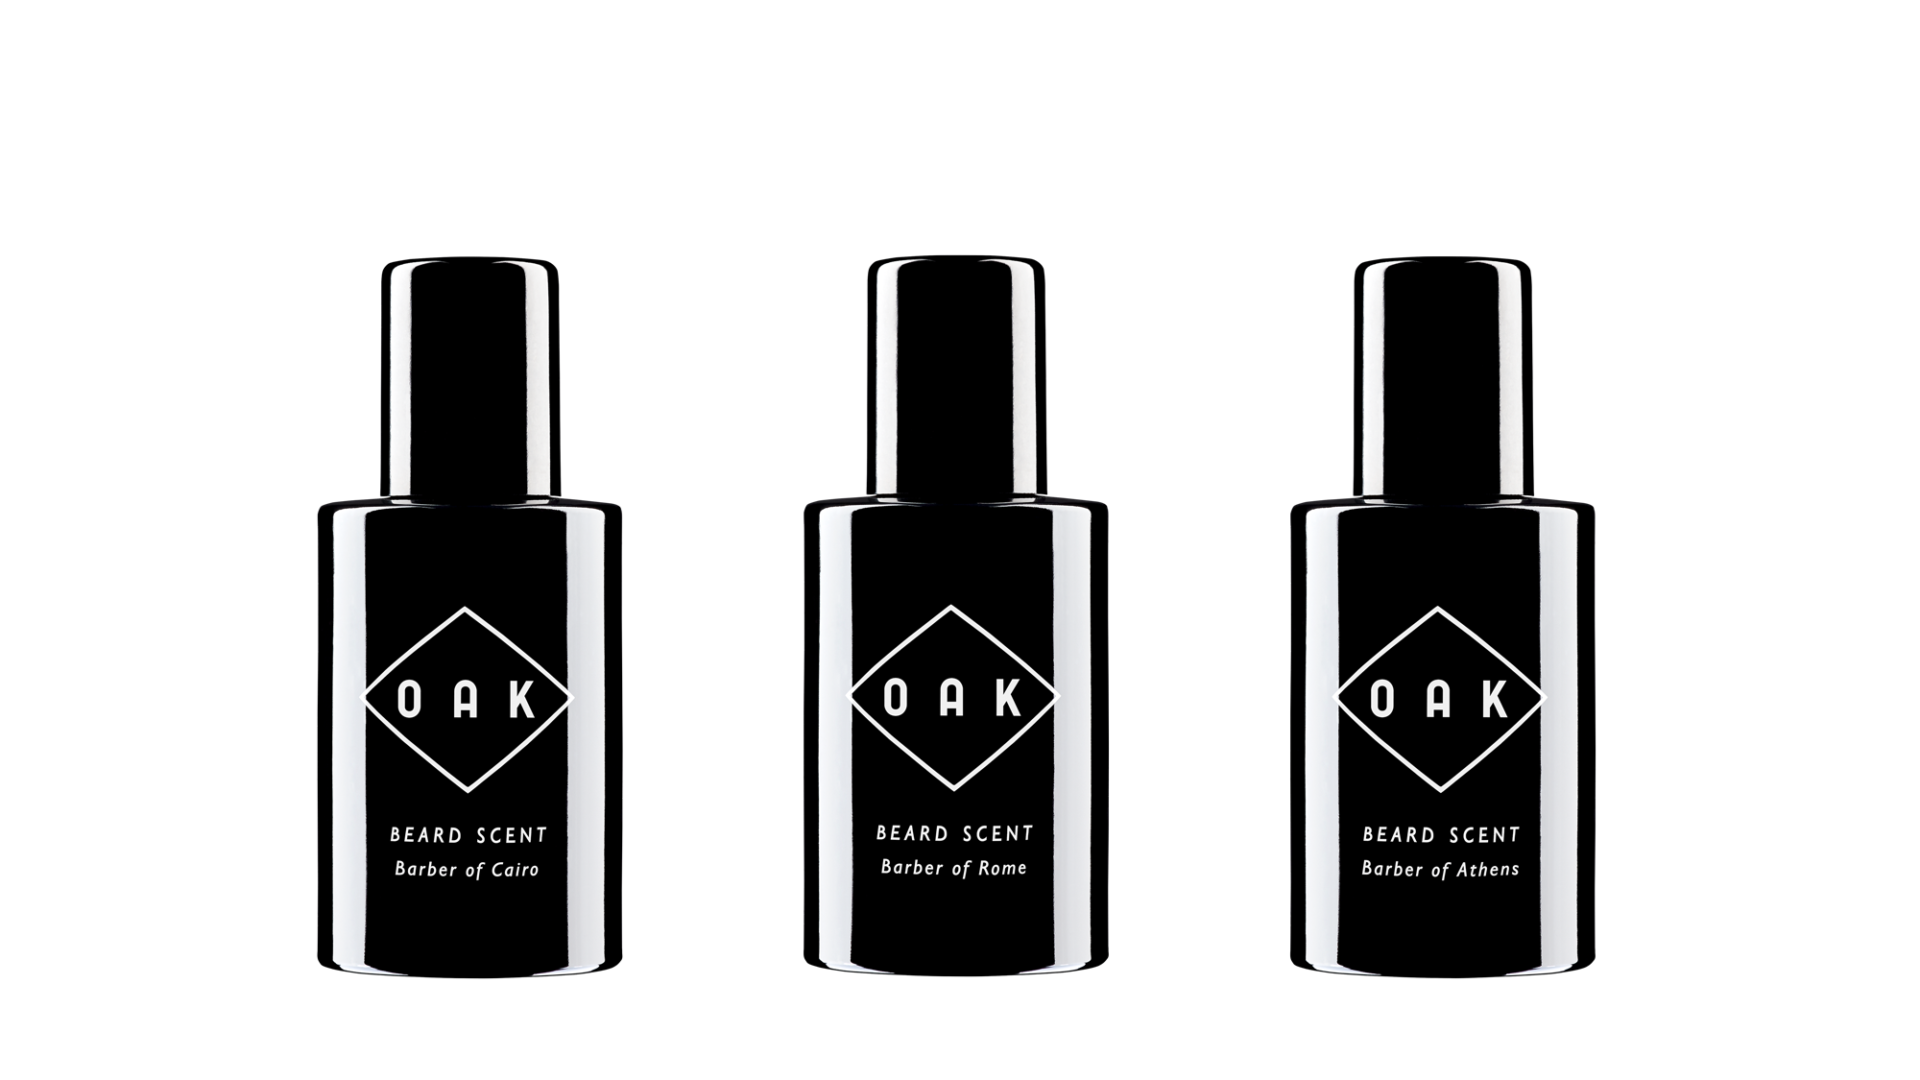 Variationen der beard scents